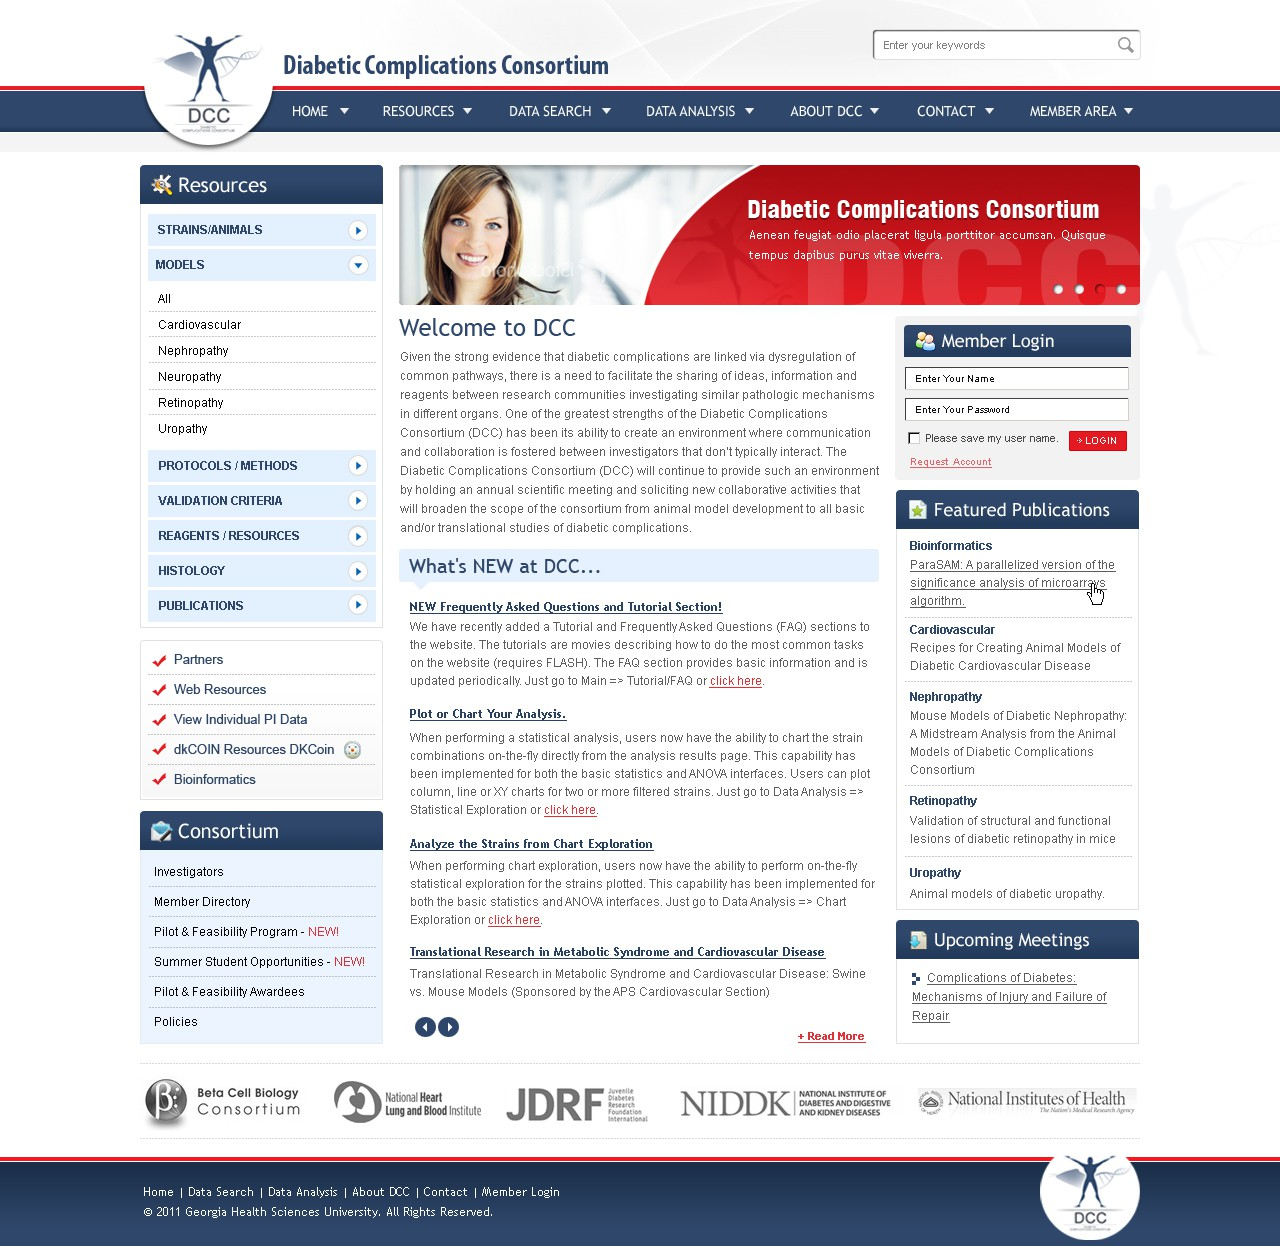 Create the next website design for Diabetic Complications Consortium